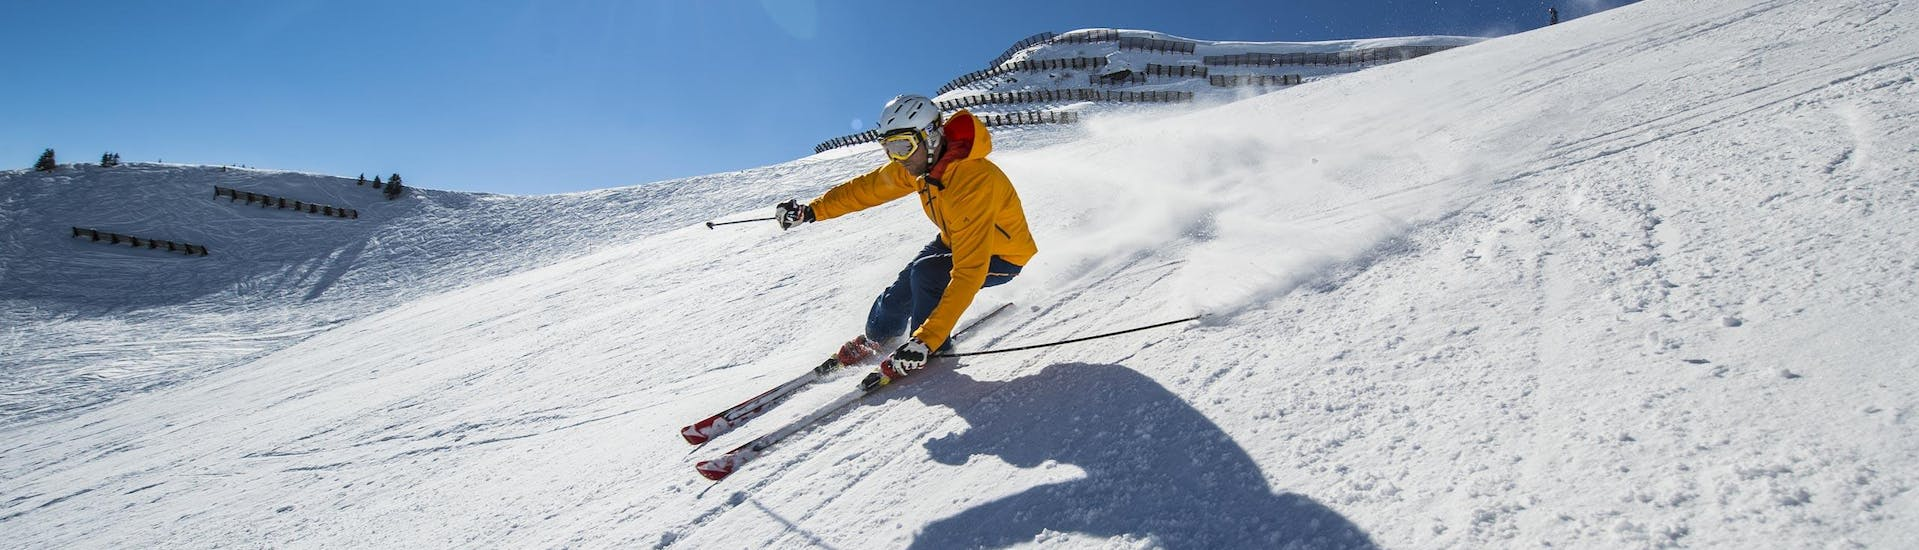 Adult Ski Lessons for Beginners: A skier is skiing down a sunny ski slope while participating in an activity offered by Scuola di Sci Vigo di Fassa.